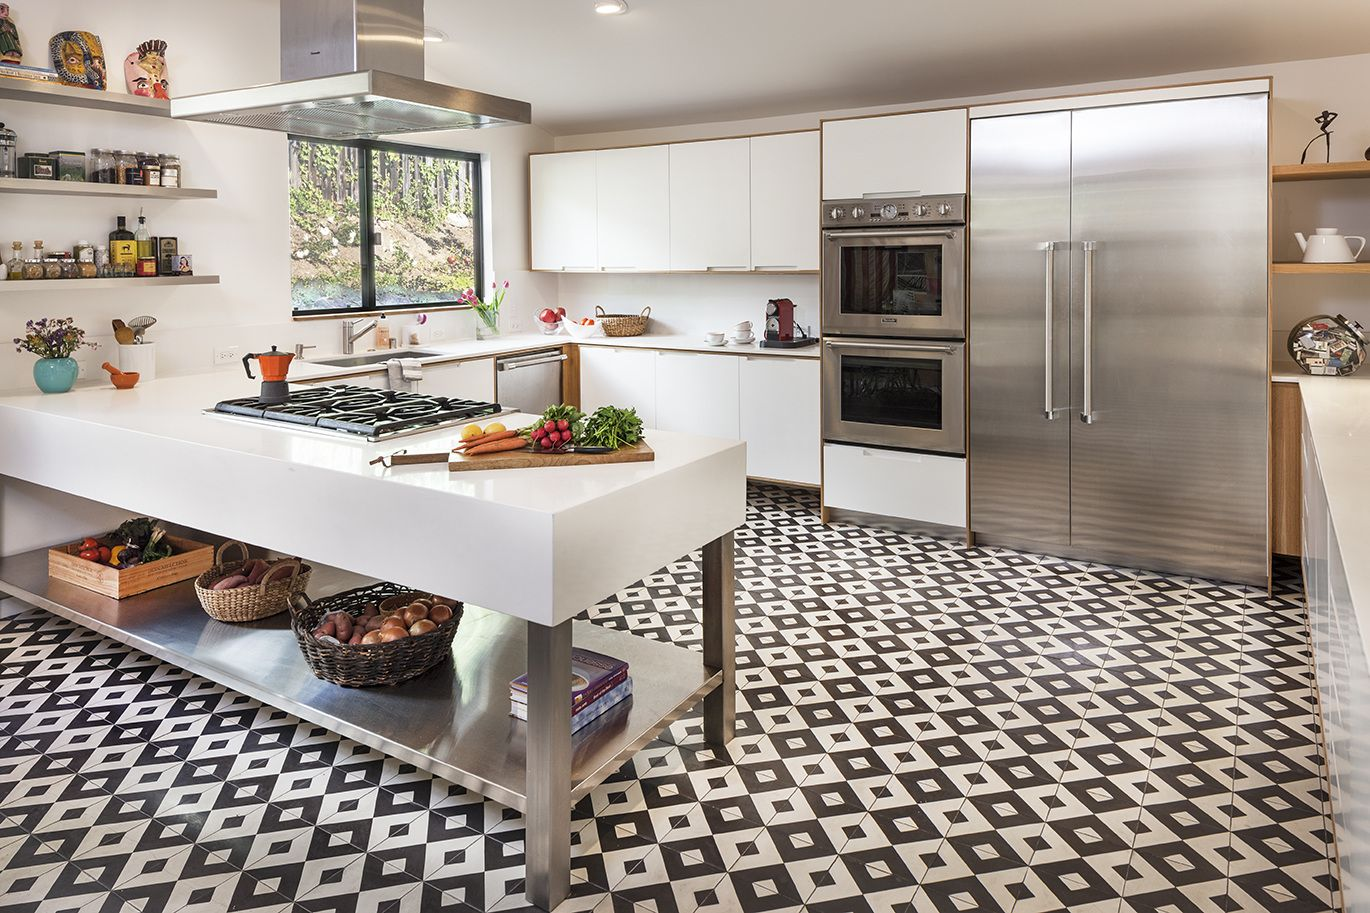 renovated midcentury kitchen with black and white tiles laundry rh pinterest com black and white kitchen tile black and white kitchen tiles design